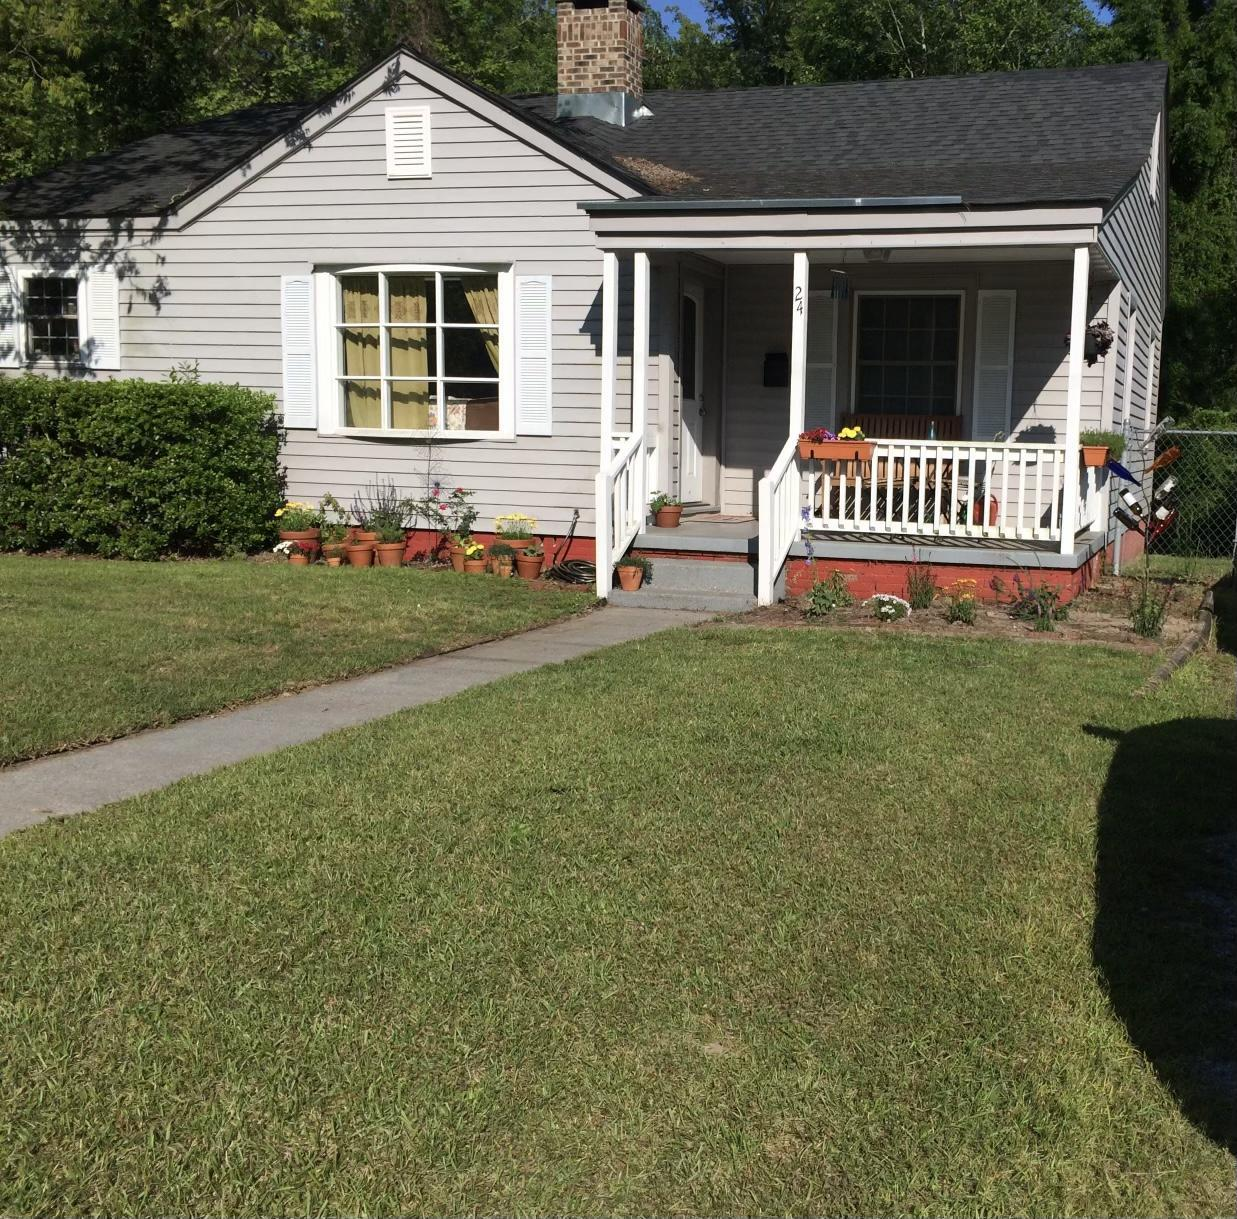 Cute 3 bedroom and 2 bath home located in Bayshore Estates, walking distance to Wilson Bay park.  No Showings